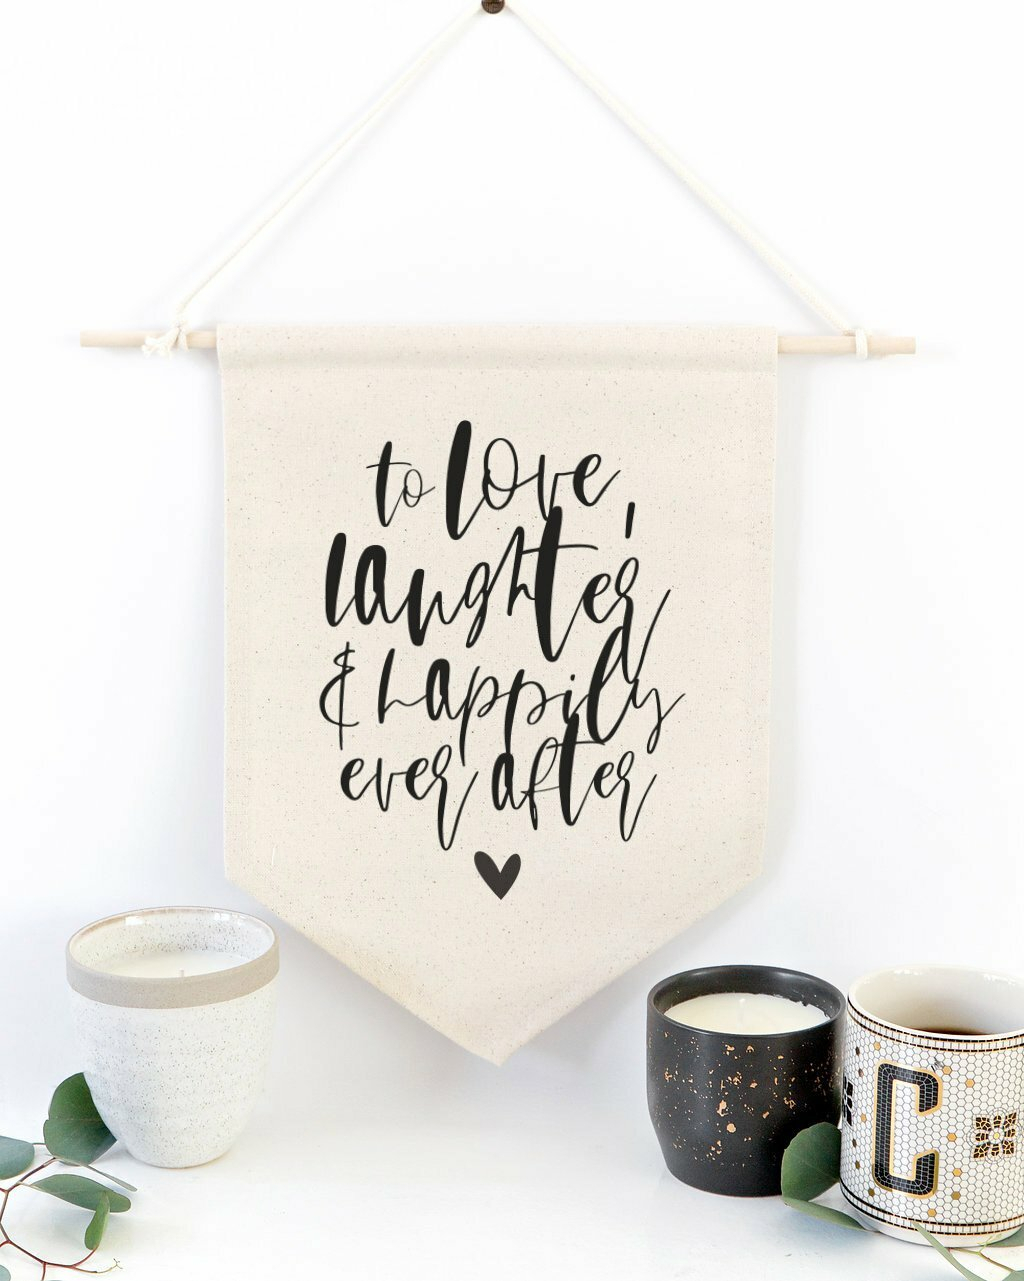 Cotton Wedding Wall Hanging Pertaining To 2018 Blended Fabric Faraway Longing Wall Hangings (View 4 of 20)